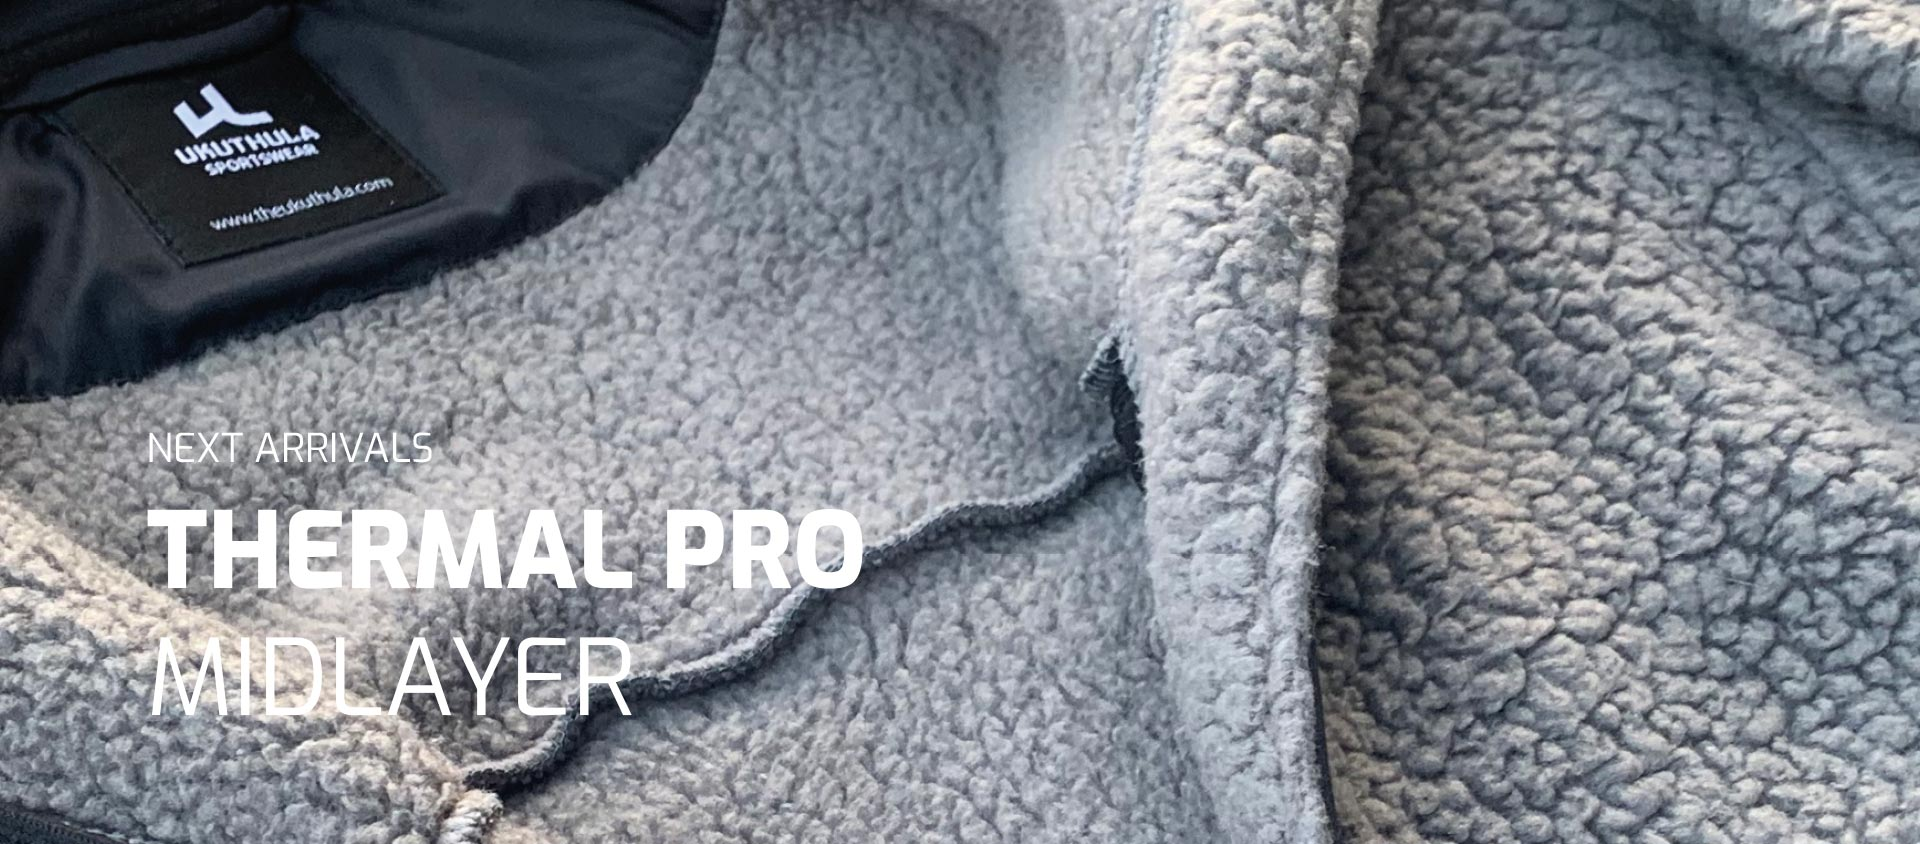 Thermal pro